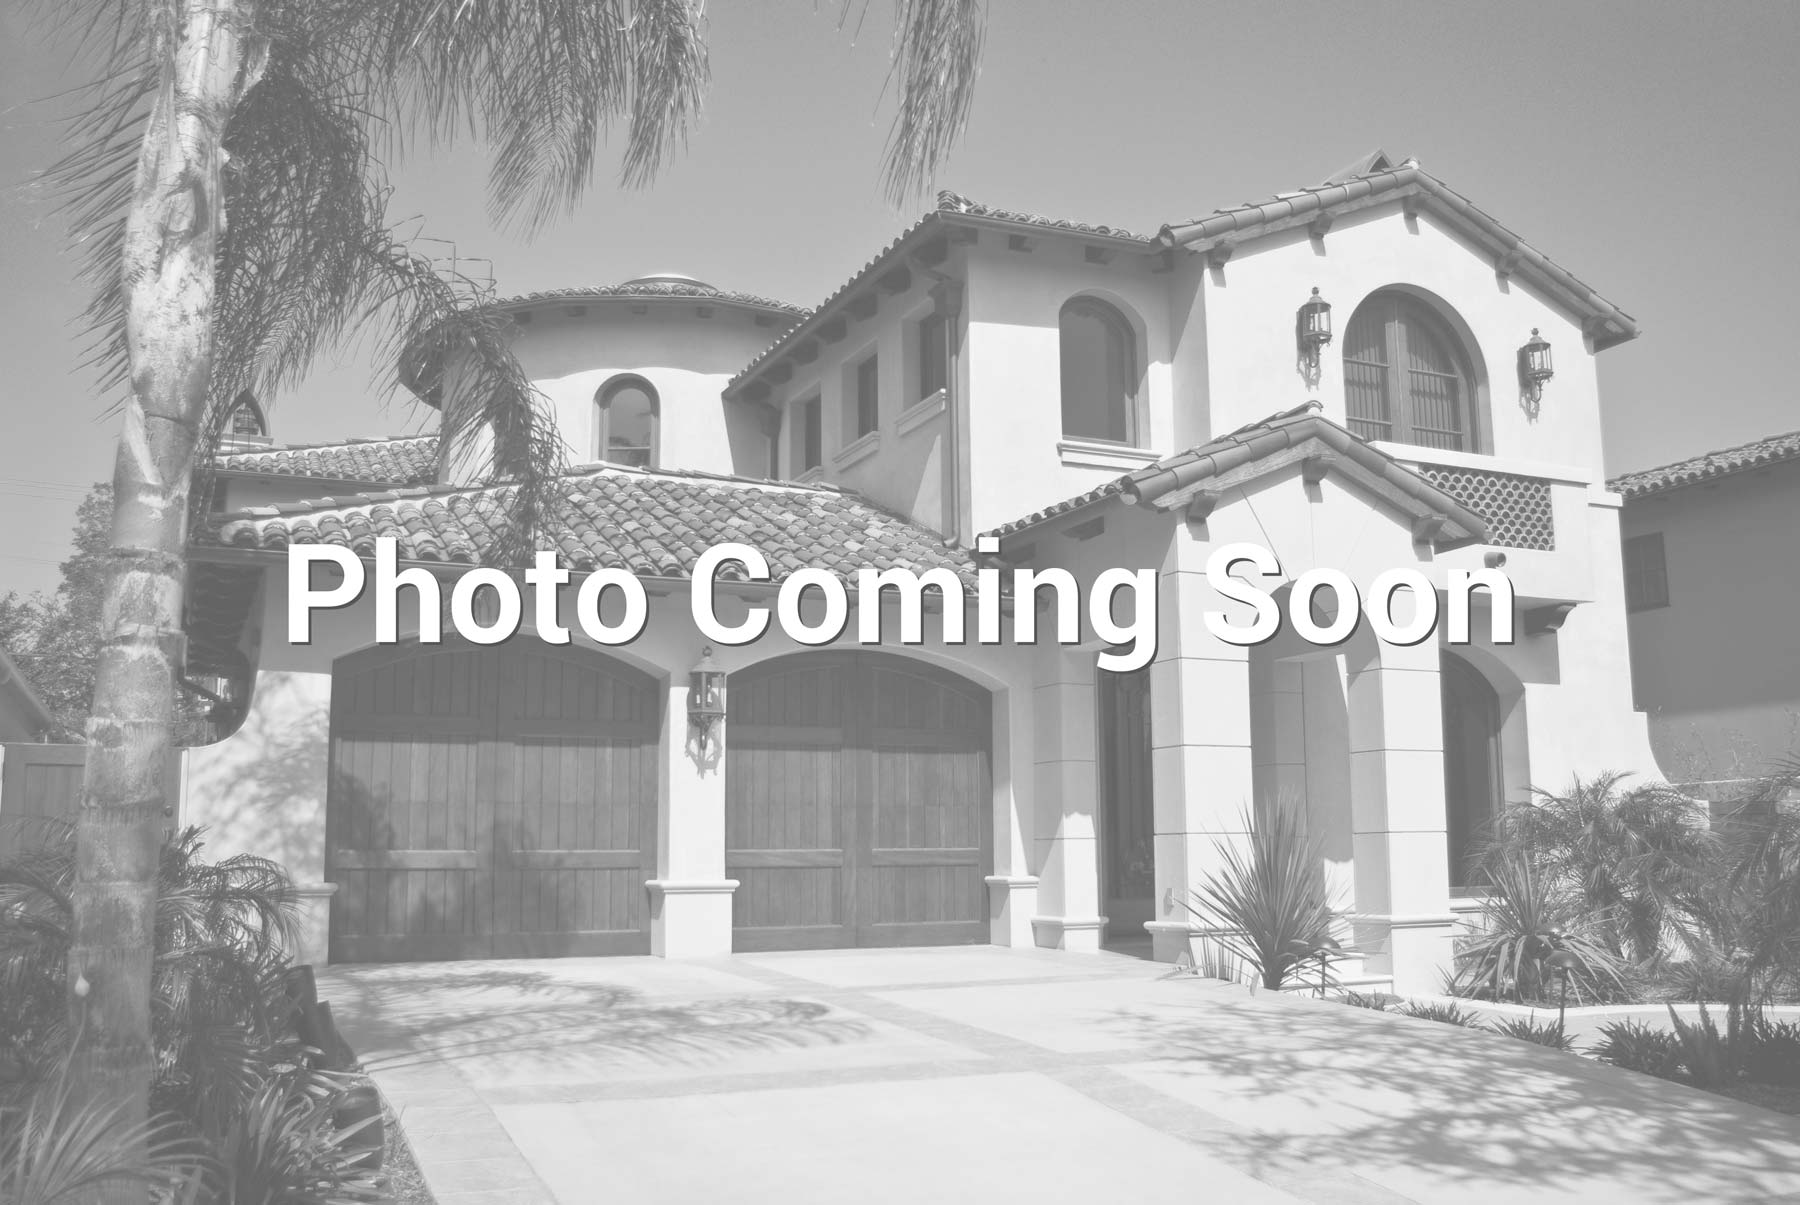 $1,395,000 - 4Br/3Ba -  for Sale in Imperial Beach, Imperial Beach